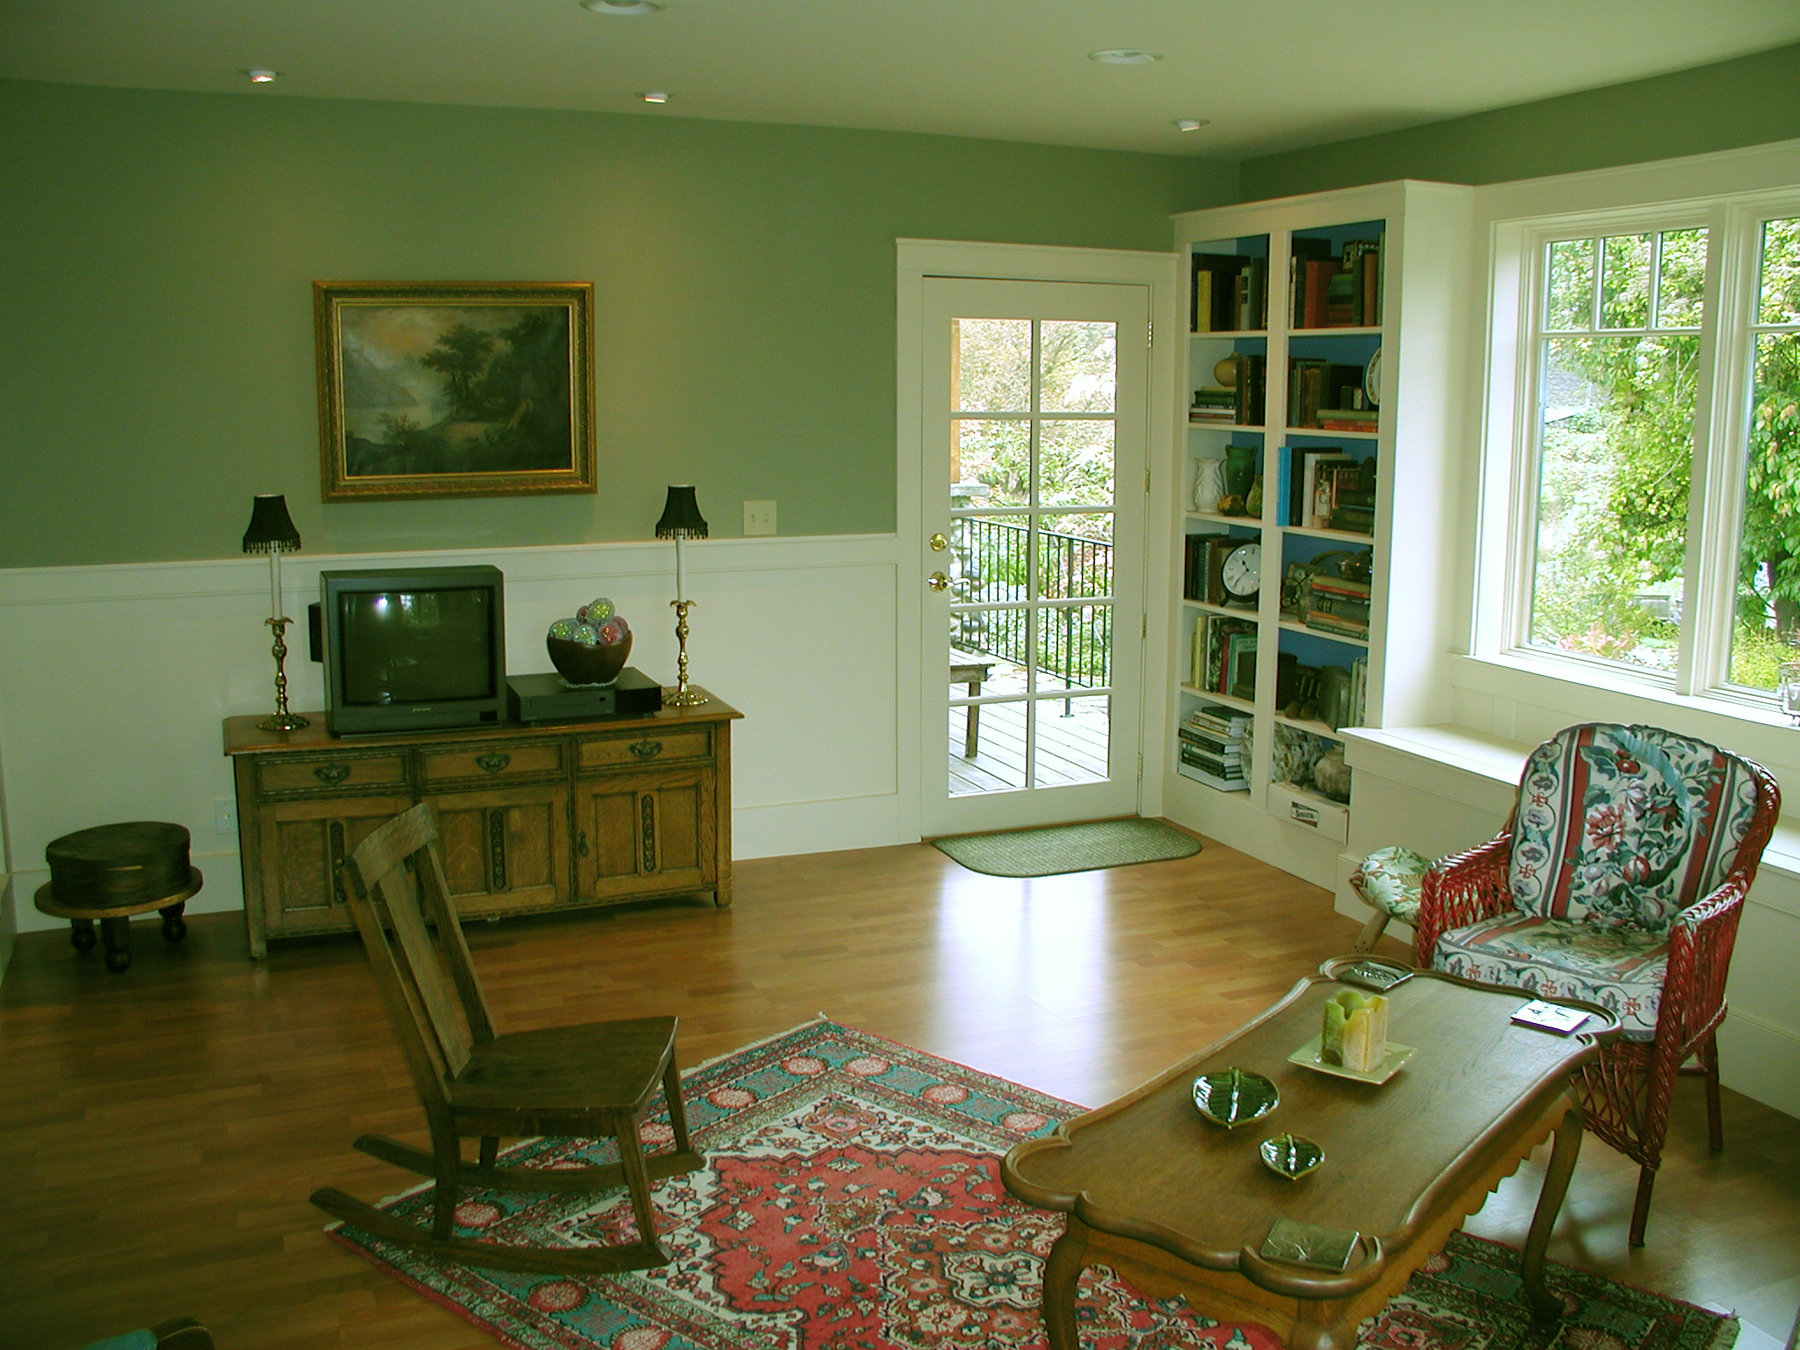 ... Room Bathrooms Hallways What Kind Of Paint Finish For Living Room What  Paint Finish To Use What Kind Of Paint Finish For Living Room Best Paint  Finish ...